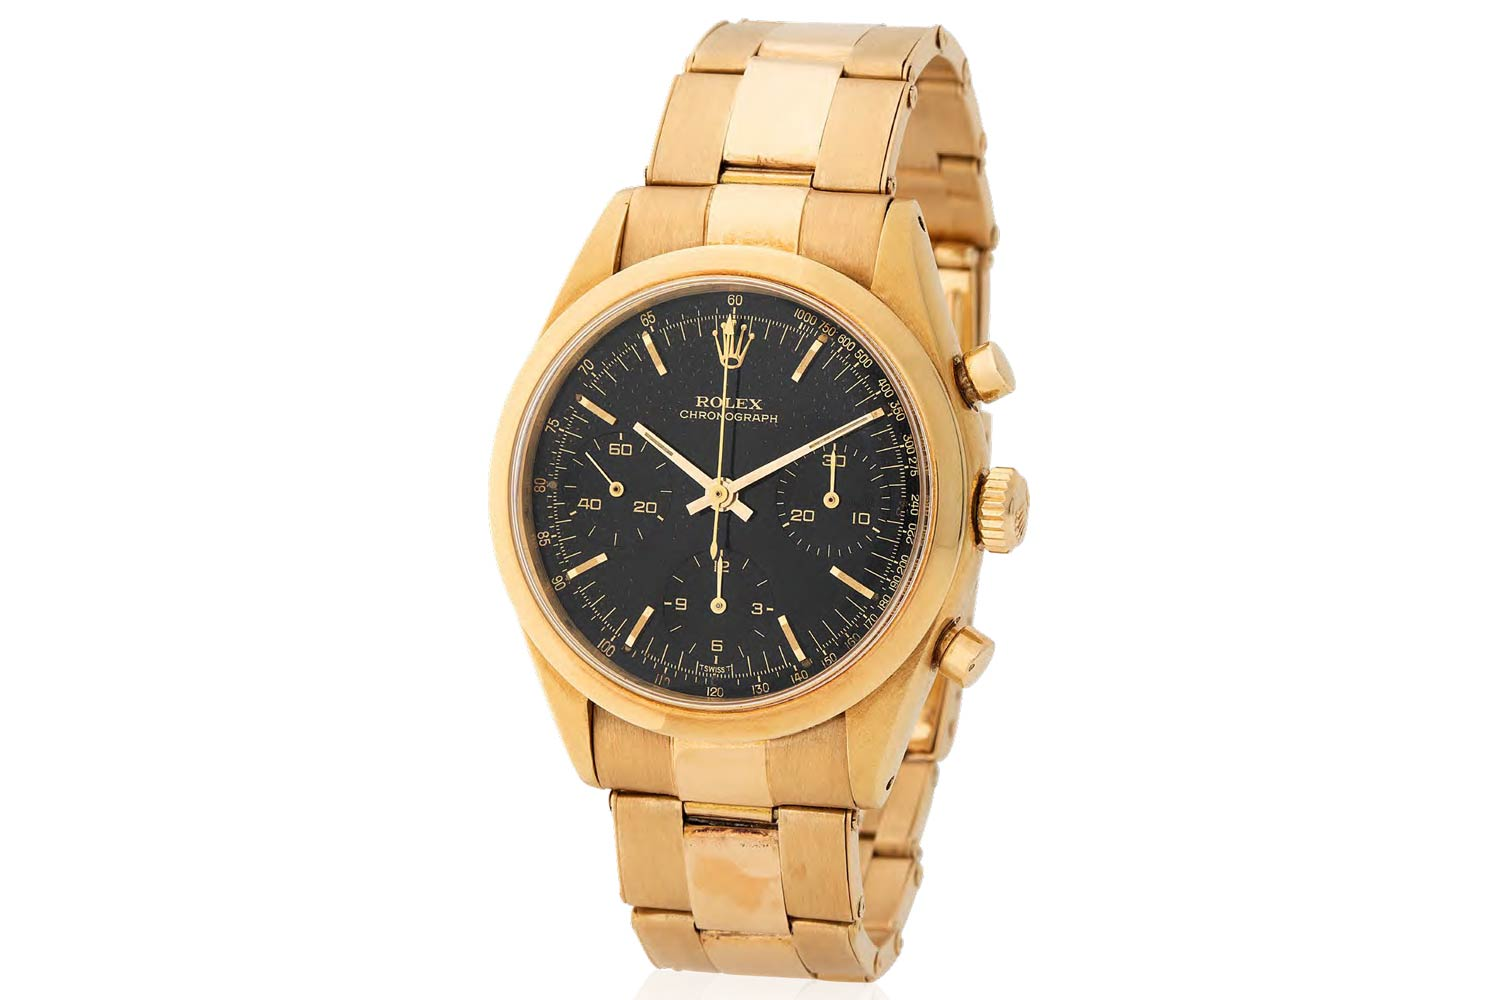 Lot 258 Rolex: Possibily unique and extremely attractive, Pre-Daytona Chronograph wristwatch in 18k yellow gold, reference 6238, black lacquer dial, former property of John Goldberger, published in the 100 superlative Rolex watches book.